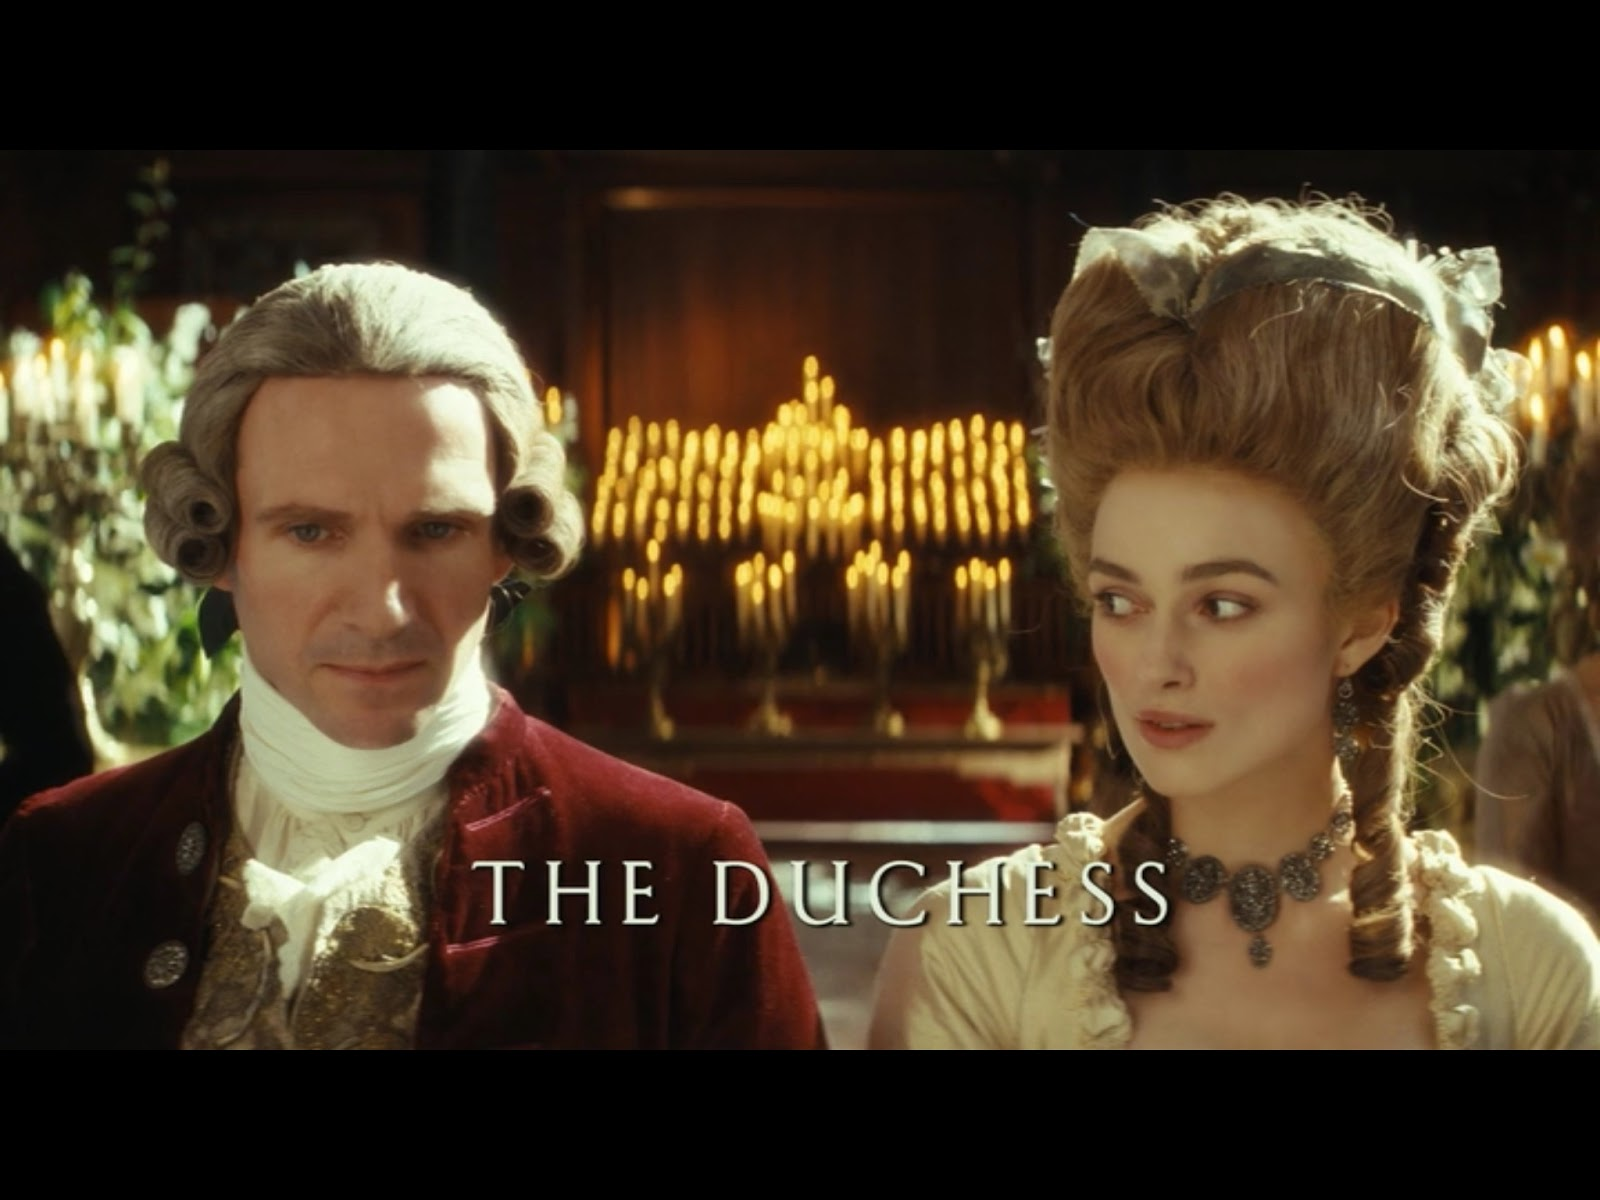 GOLDEN DREAMLAND: Fashionable Film: The Duchess